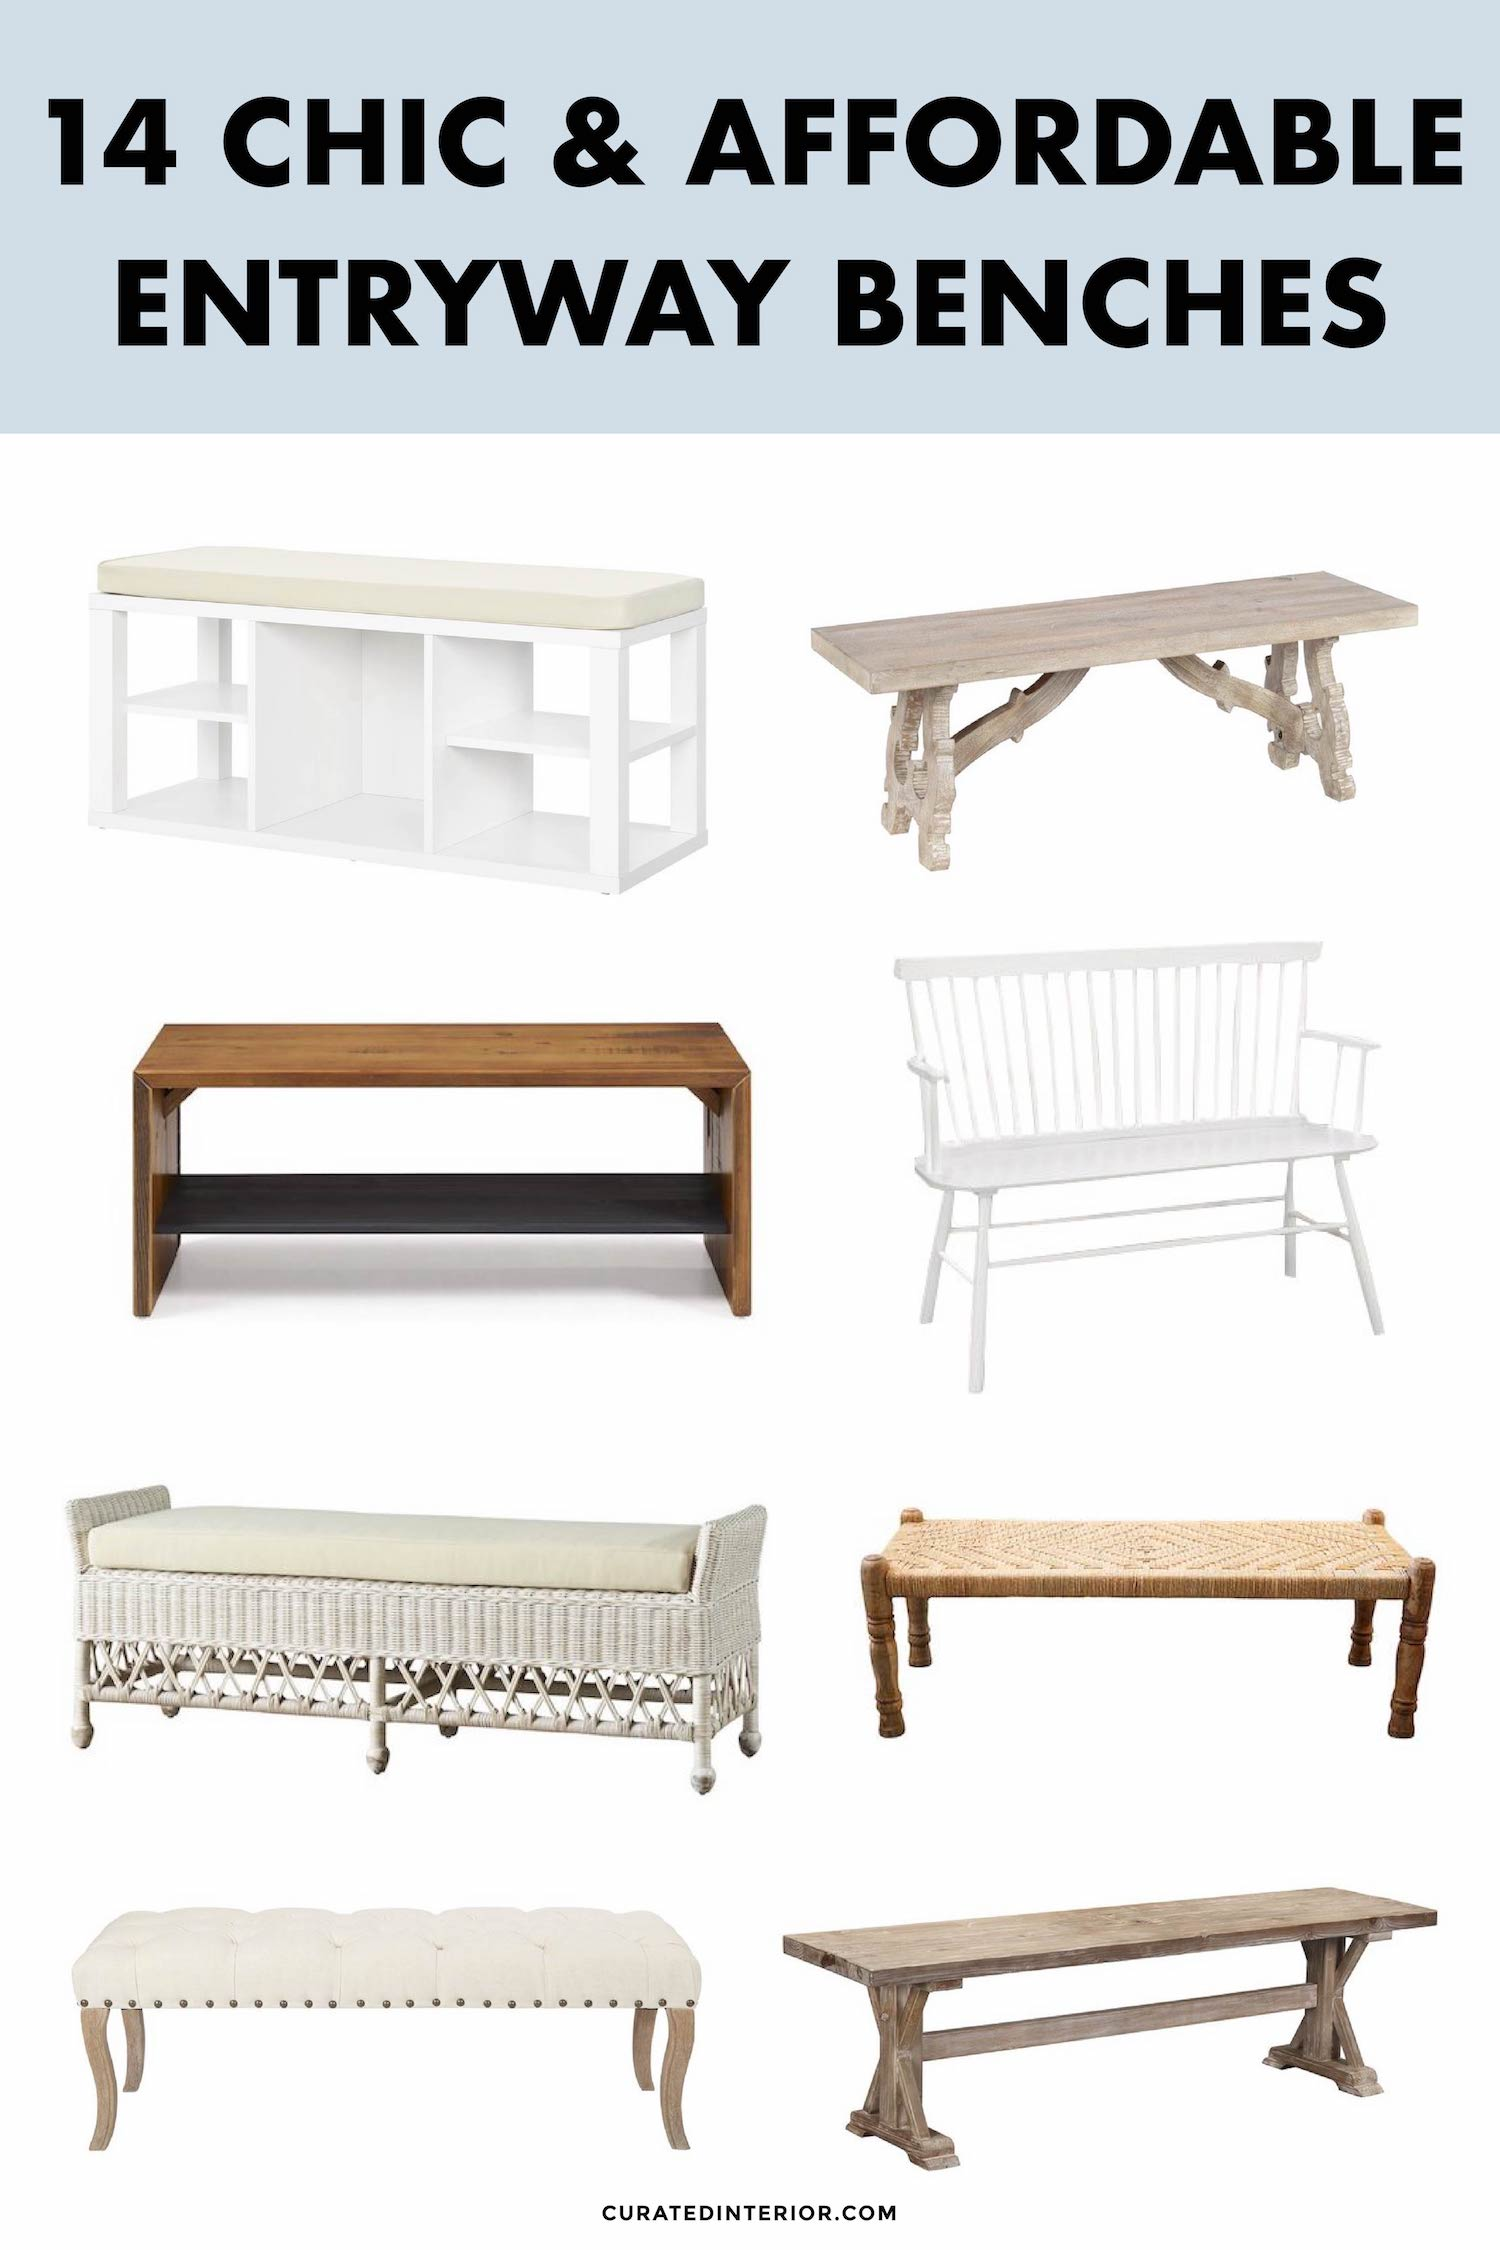 Entryway Benches We Love